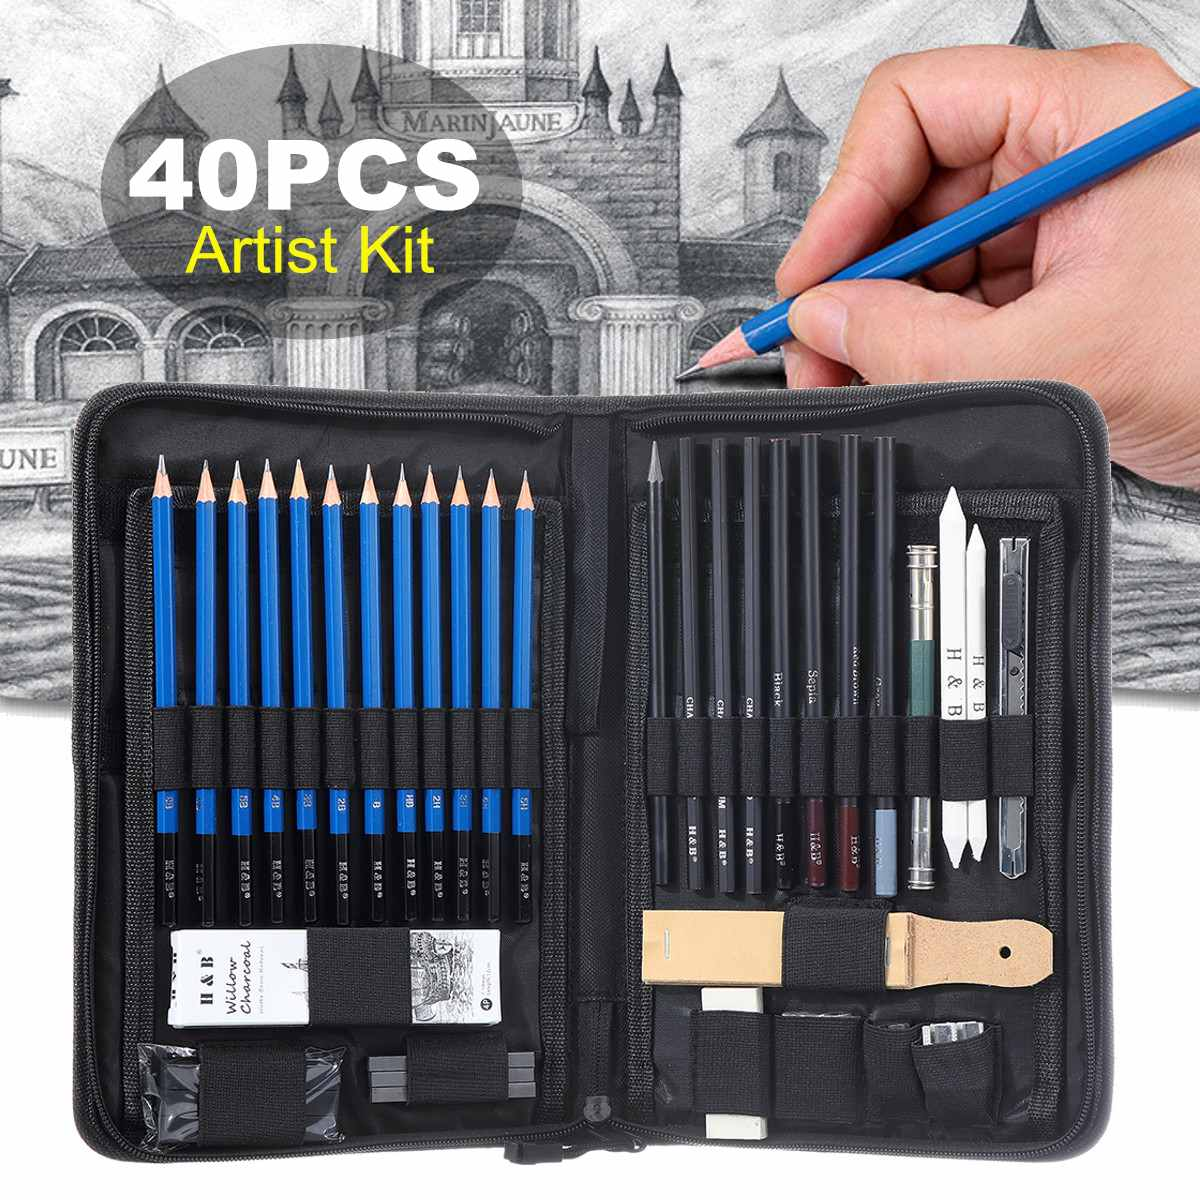 40Pcs Professional Drawing Pencils Artist Kit Sketch Charcoal Pencils Art Tools Stationery Bag Office School Painting Supplies40Pcs Professional Drawing Pencils Artist Kit Sketch Charcoal Pencils Art Tools Stationery Bag Office School Painting Supplies